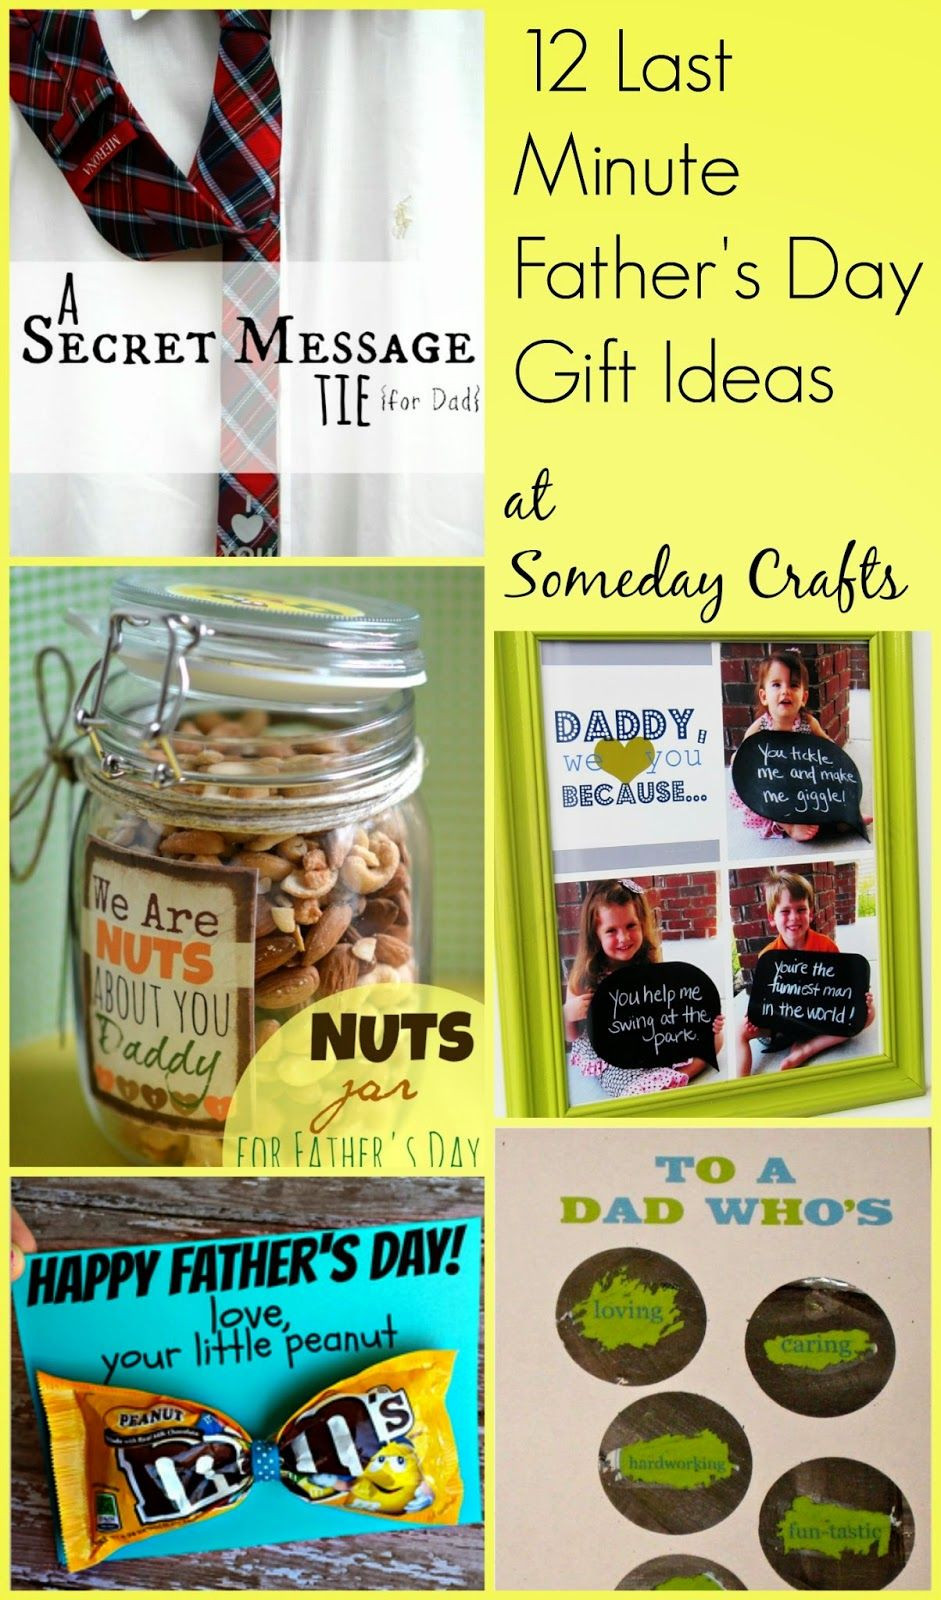 Last Minute Father'S Day Gift Ideas  Someday Crafts 12 Last Minute Father s Day Gifts